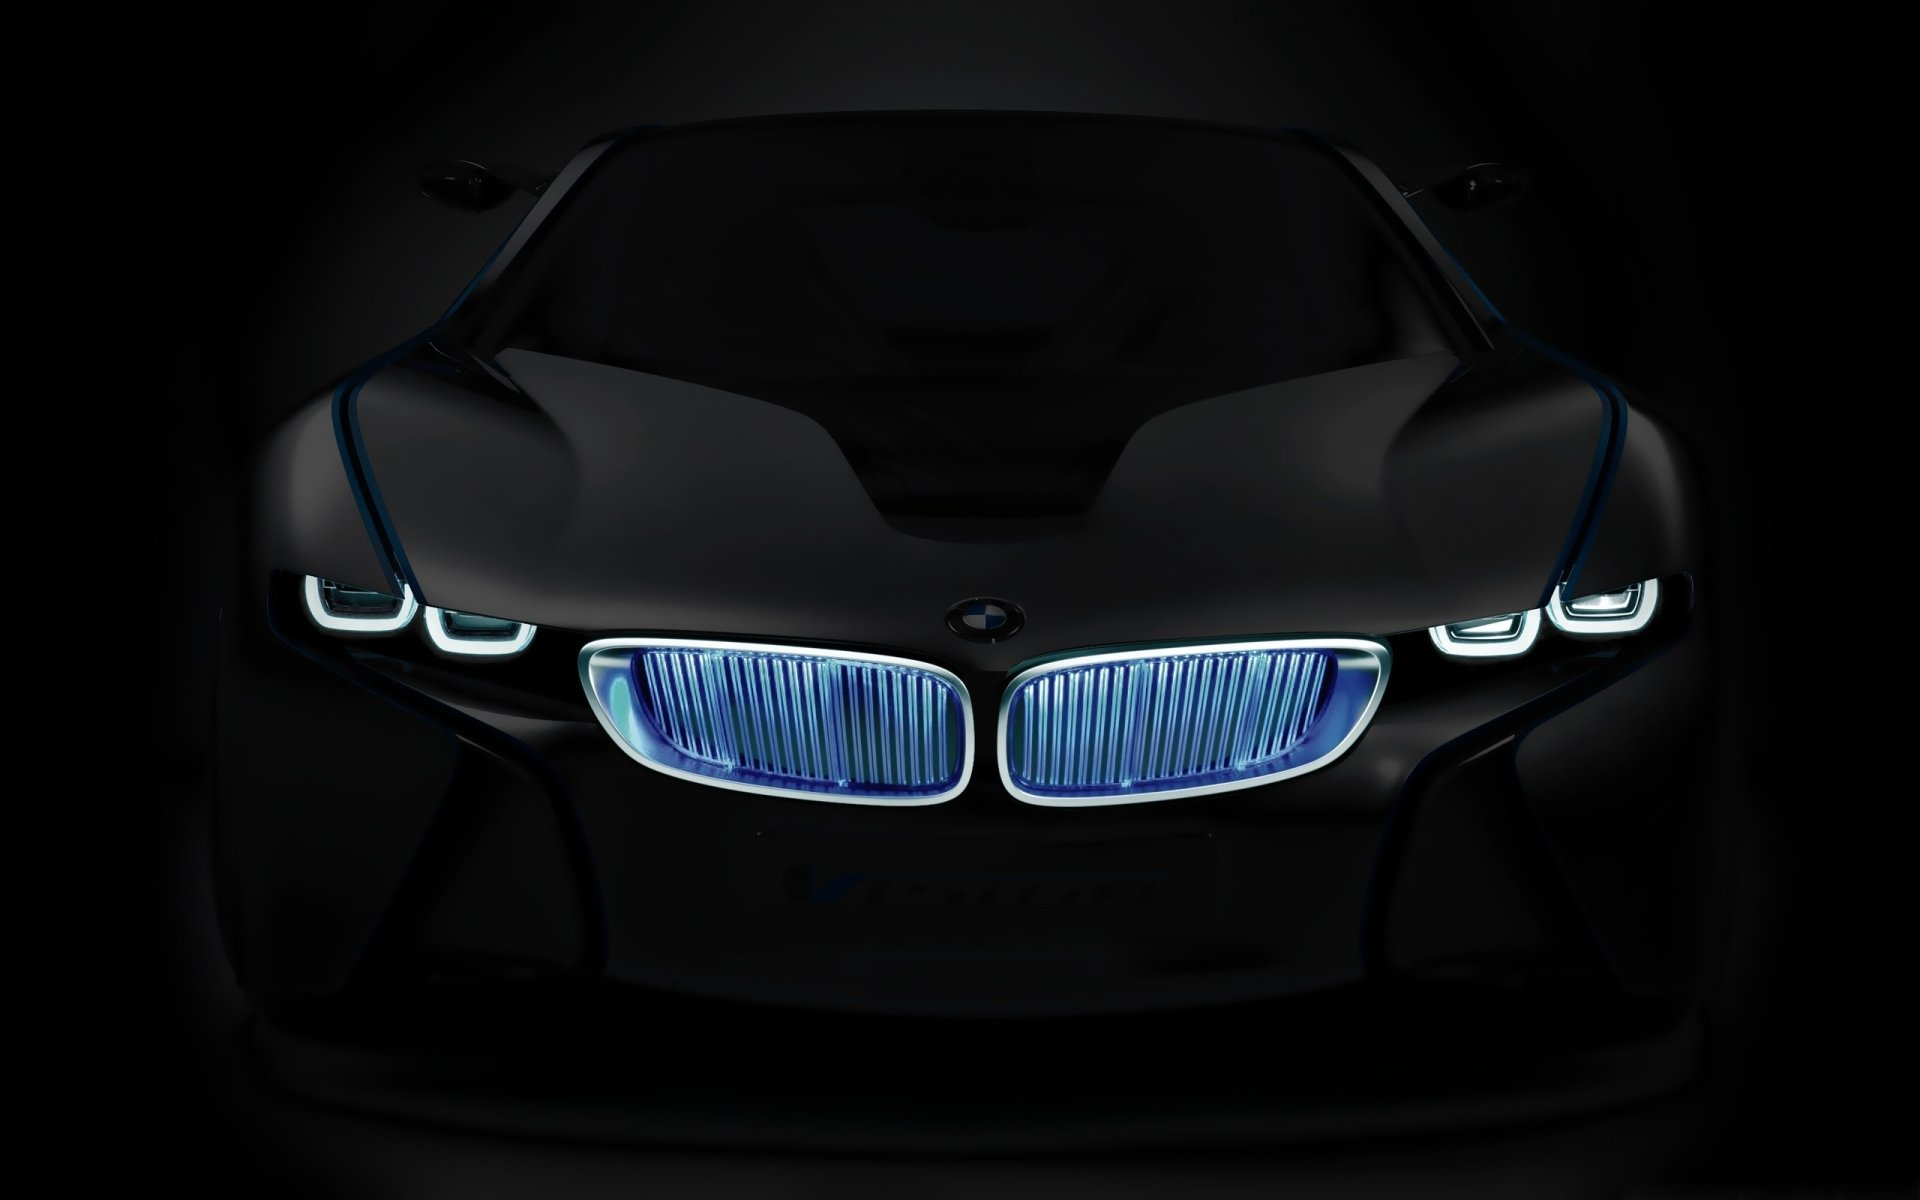 148 Bmw I8 Hd Wallpapers Background Images Wallpaper Abyss